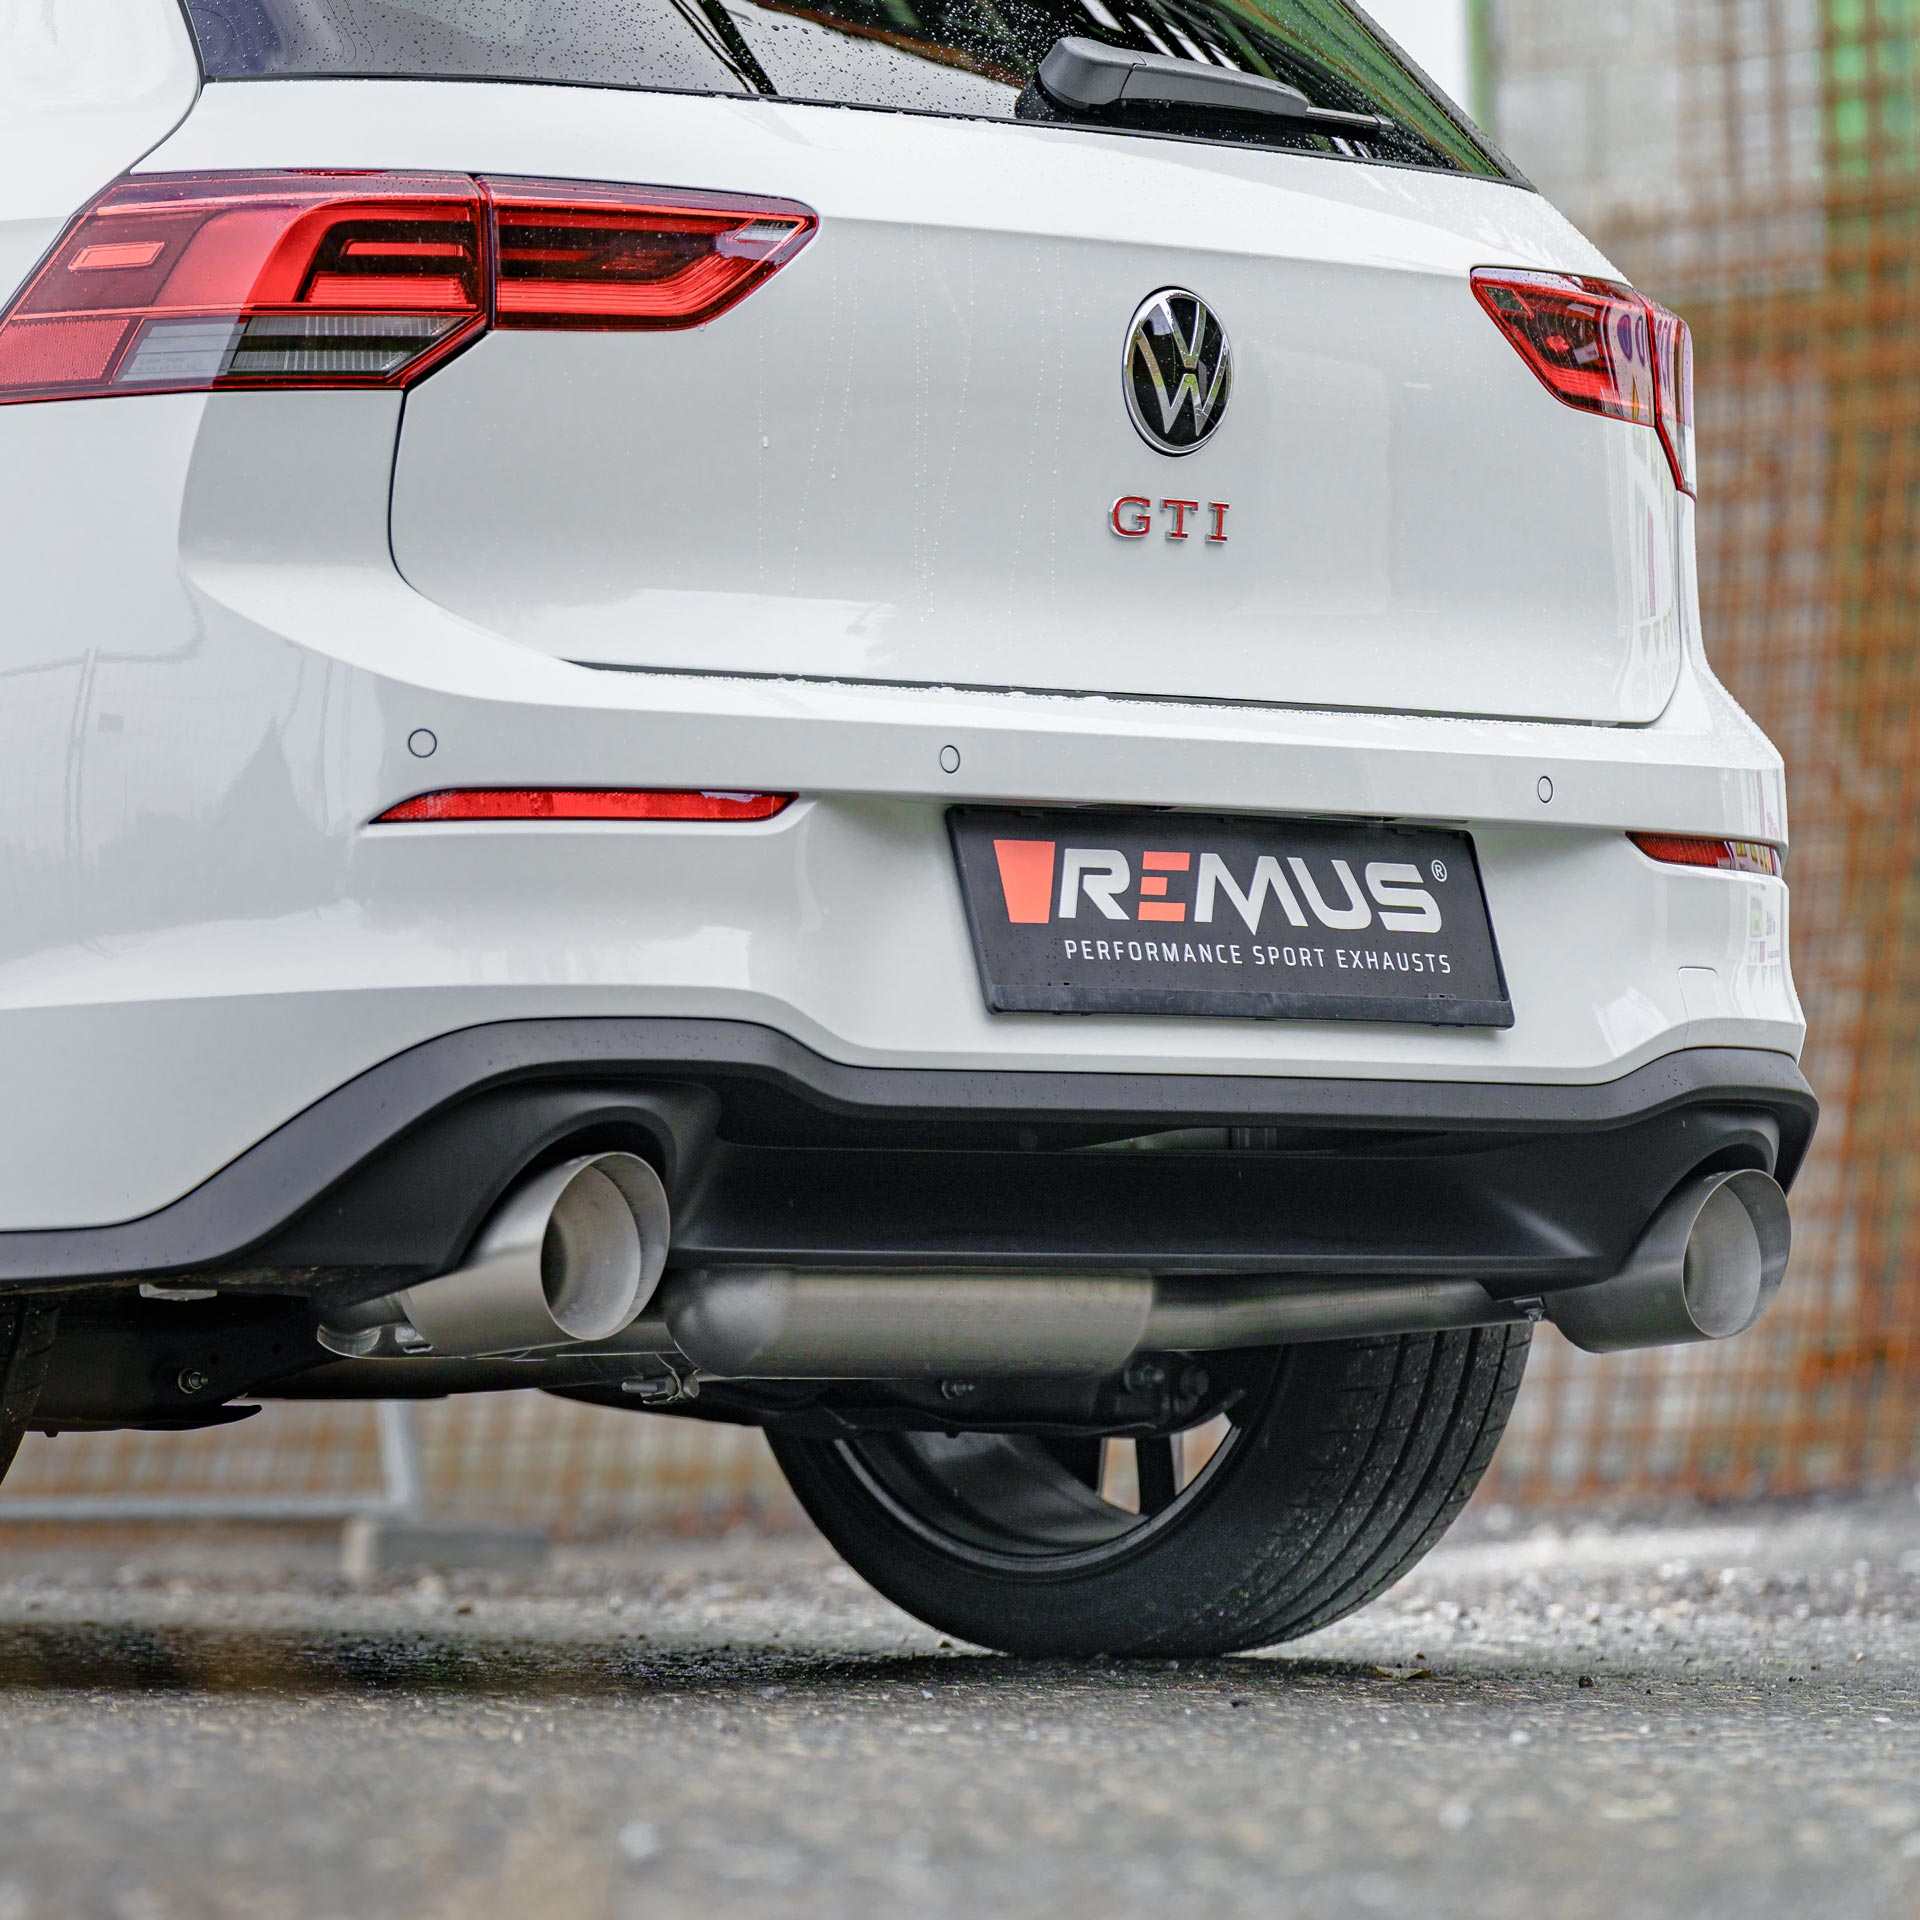 NEW DEVELOPMENT 2021 | #01 VW Golf 8 GTI PERFORMANCE EXHAUST SYSTEM